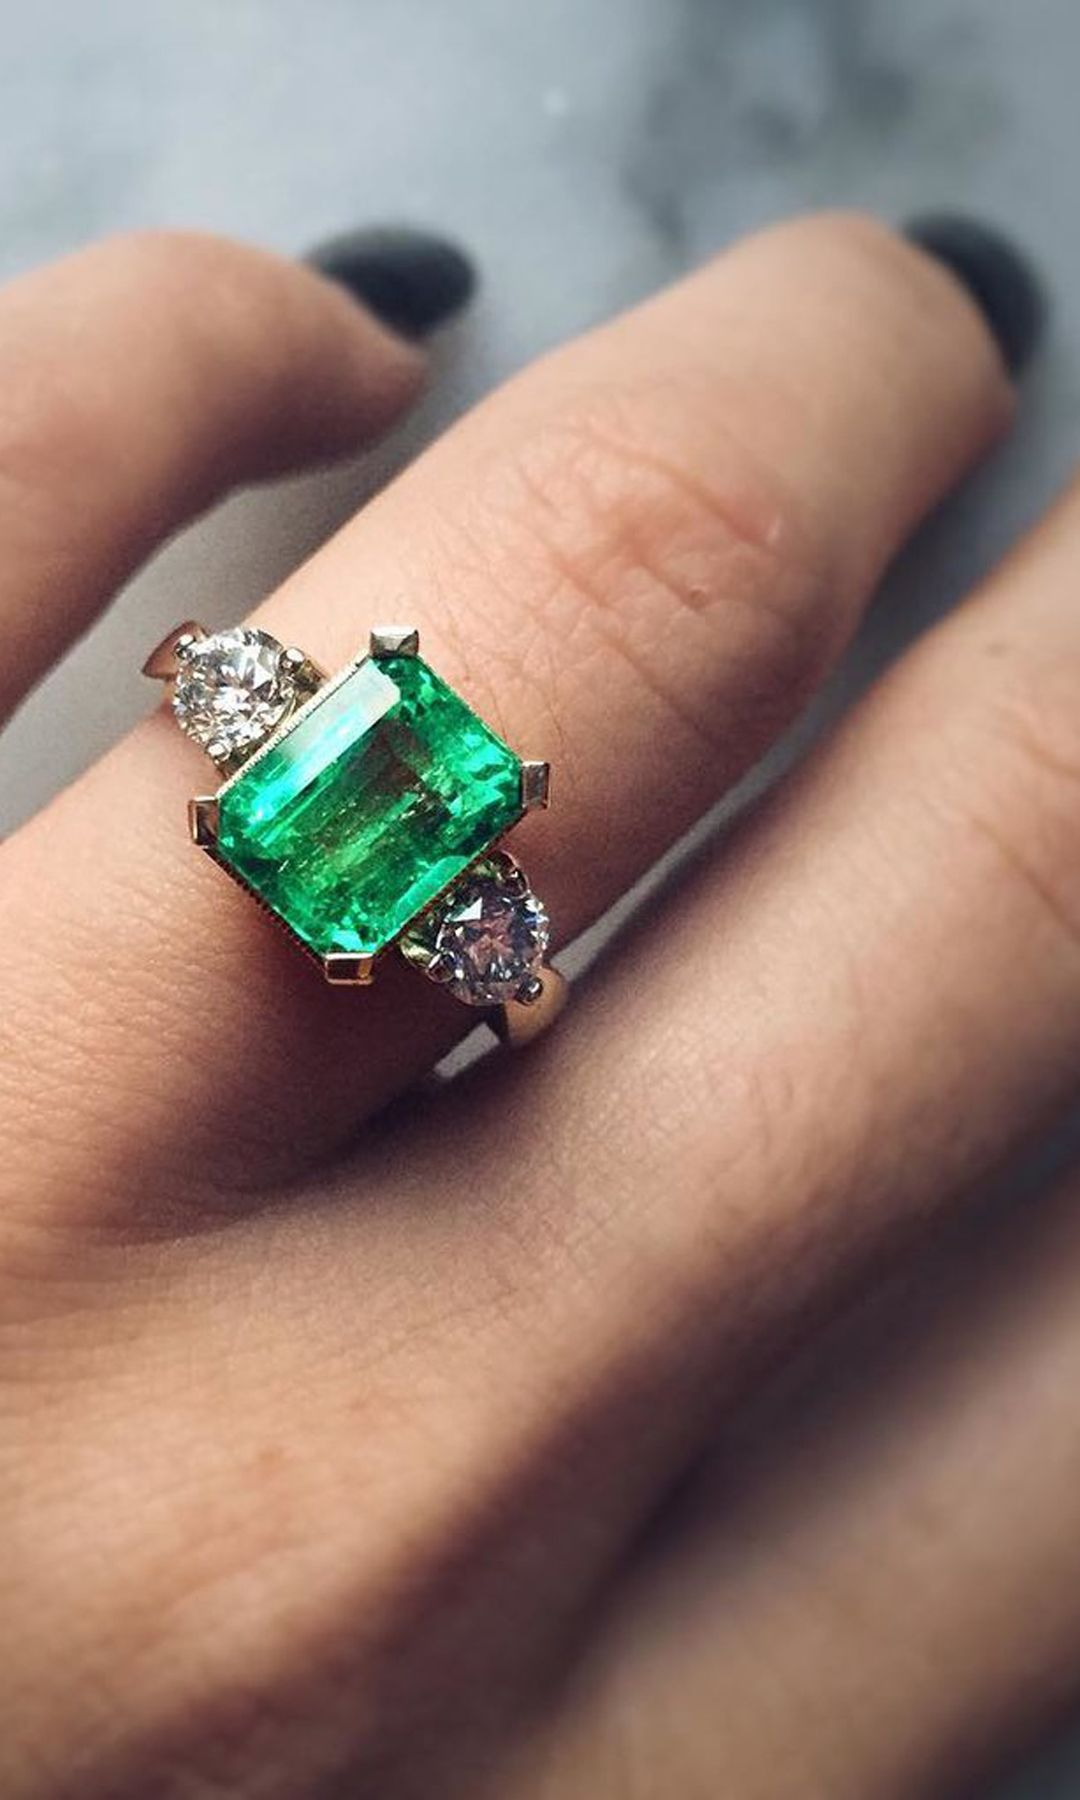 the engagement round upscale jewellery on emerald with diamonds editor product brilliant a emeraldcut diamond band shop cut crop asprey platinum set scale subsampling ring false